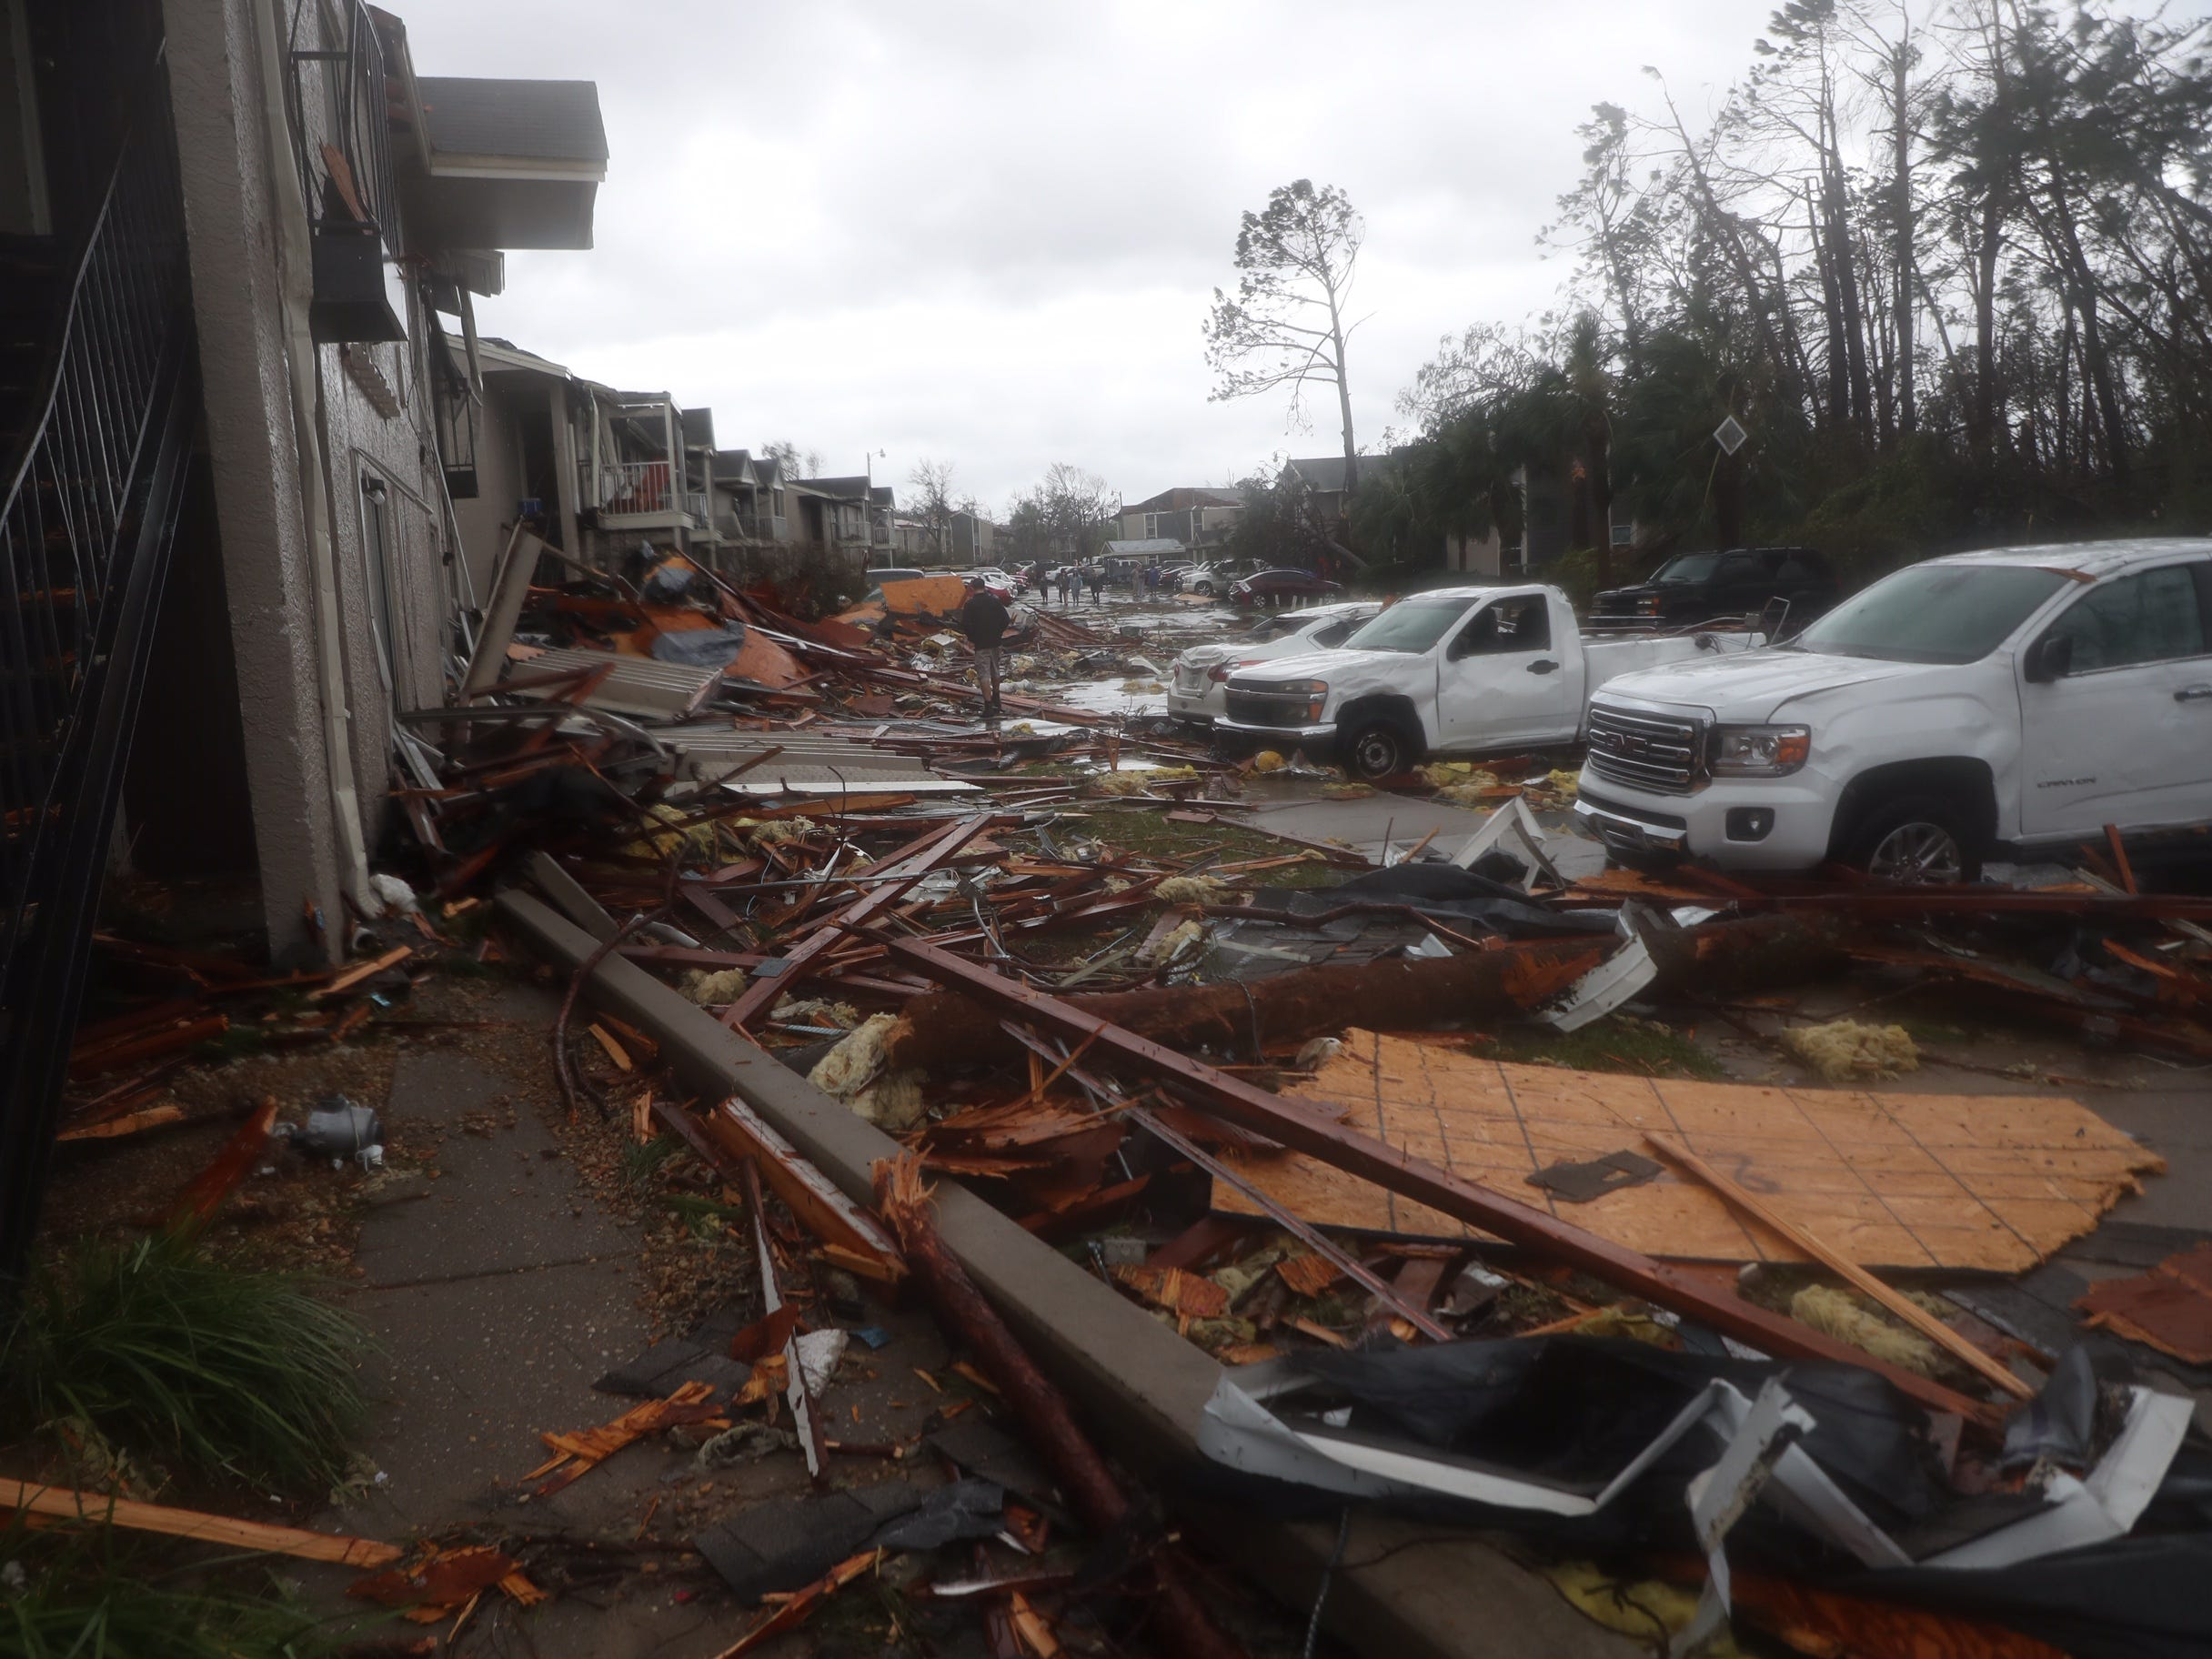 Heavy damage caused by Hurricane Michael in Panama City, Fla., Wednesday, Oct. 10, 2018.